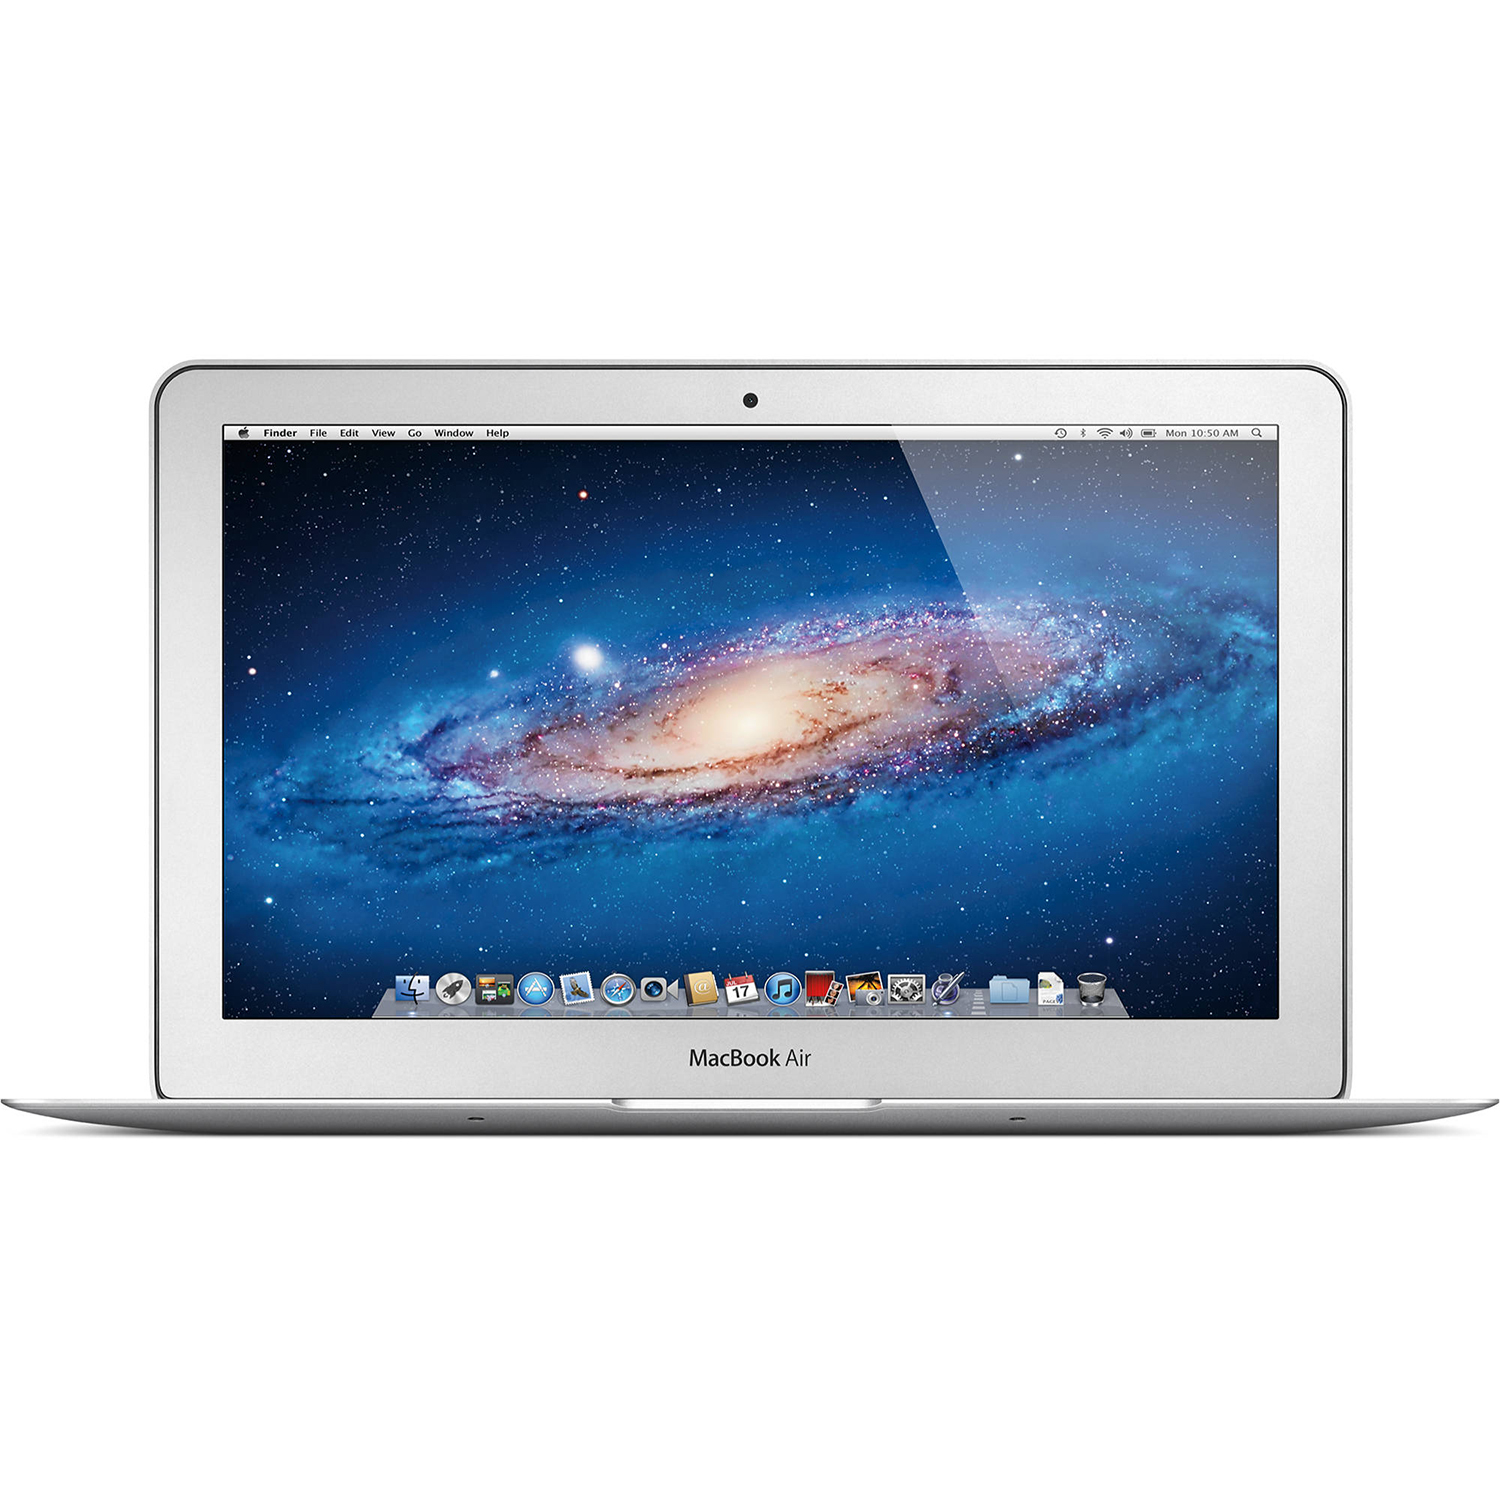 "Refurbished Apple MacBook Air 11.6"" LED Intel i5-3317 1.7GHz 4GB 64GB SSD Laptop - MD223LL"